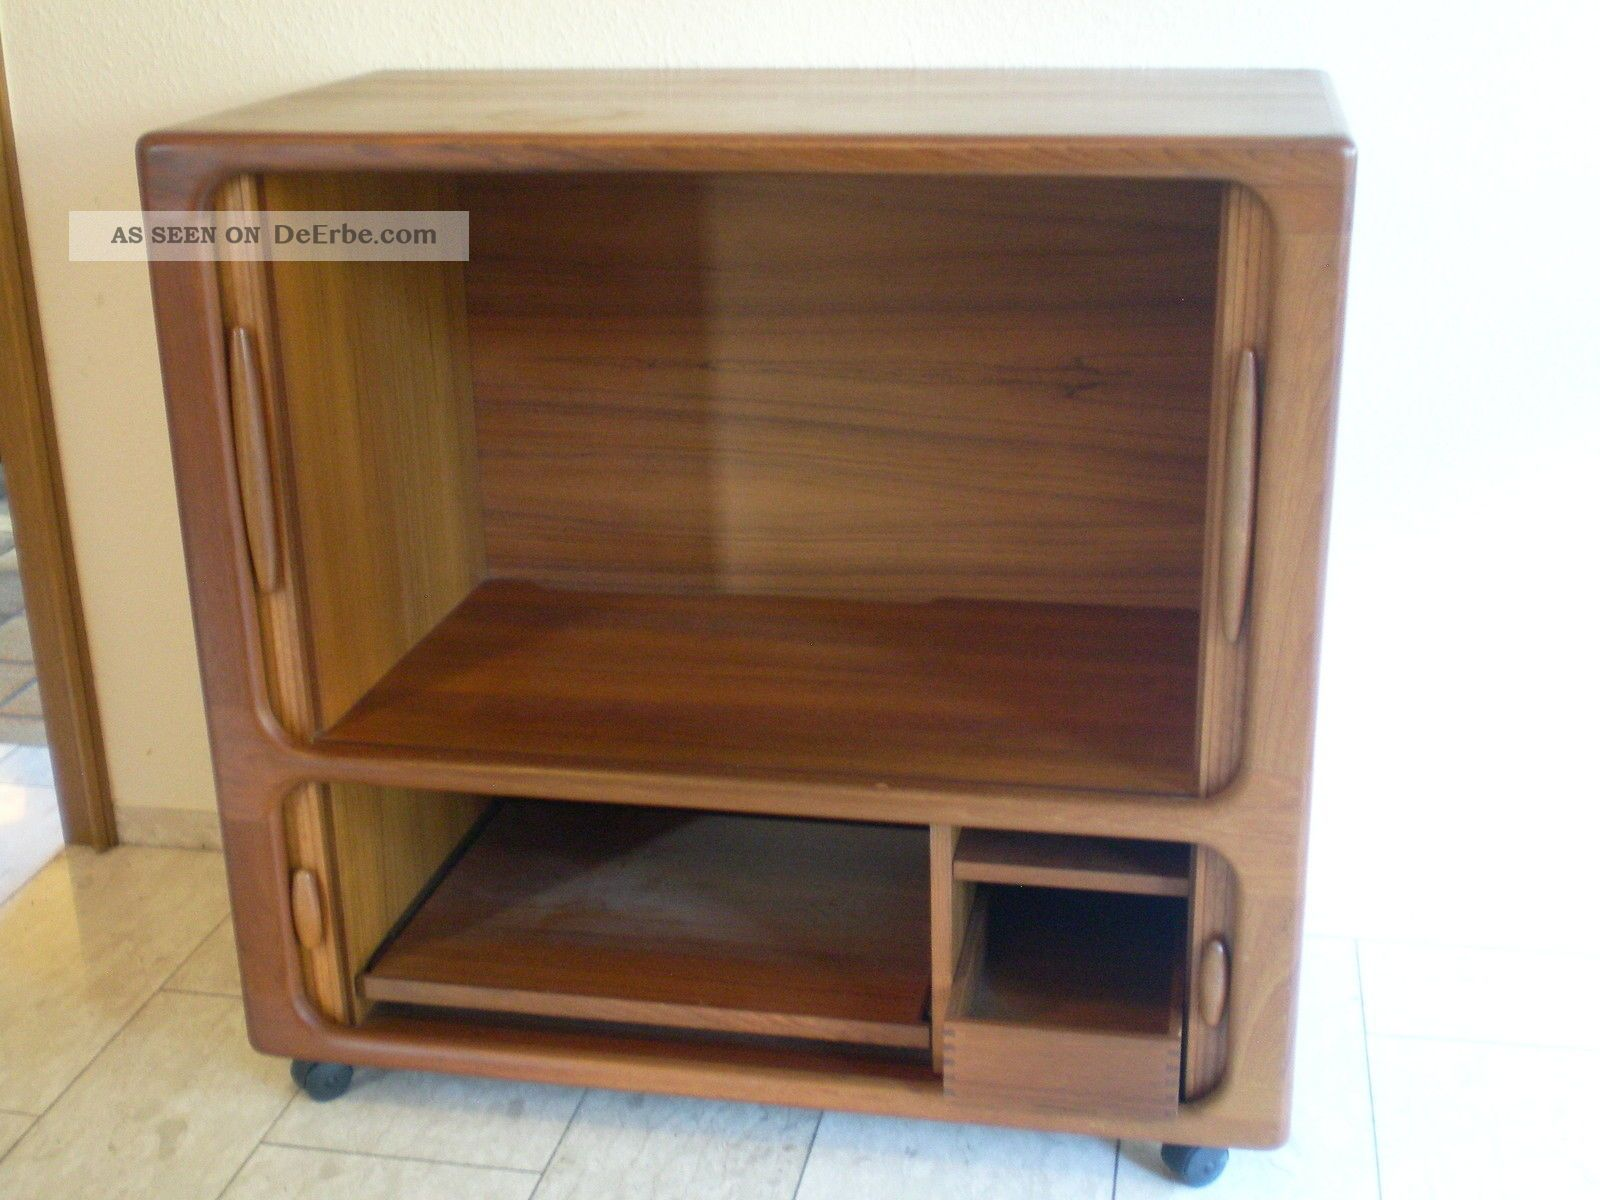 Tv Schrank Holz Danish Design 60er 70er Dyrlund Teak Holz Highboard Tv